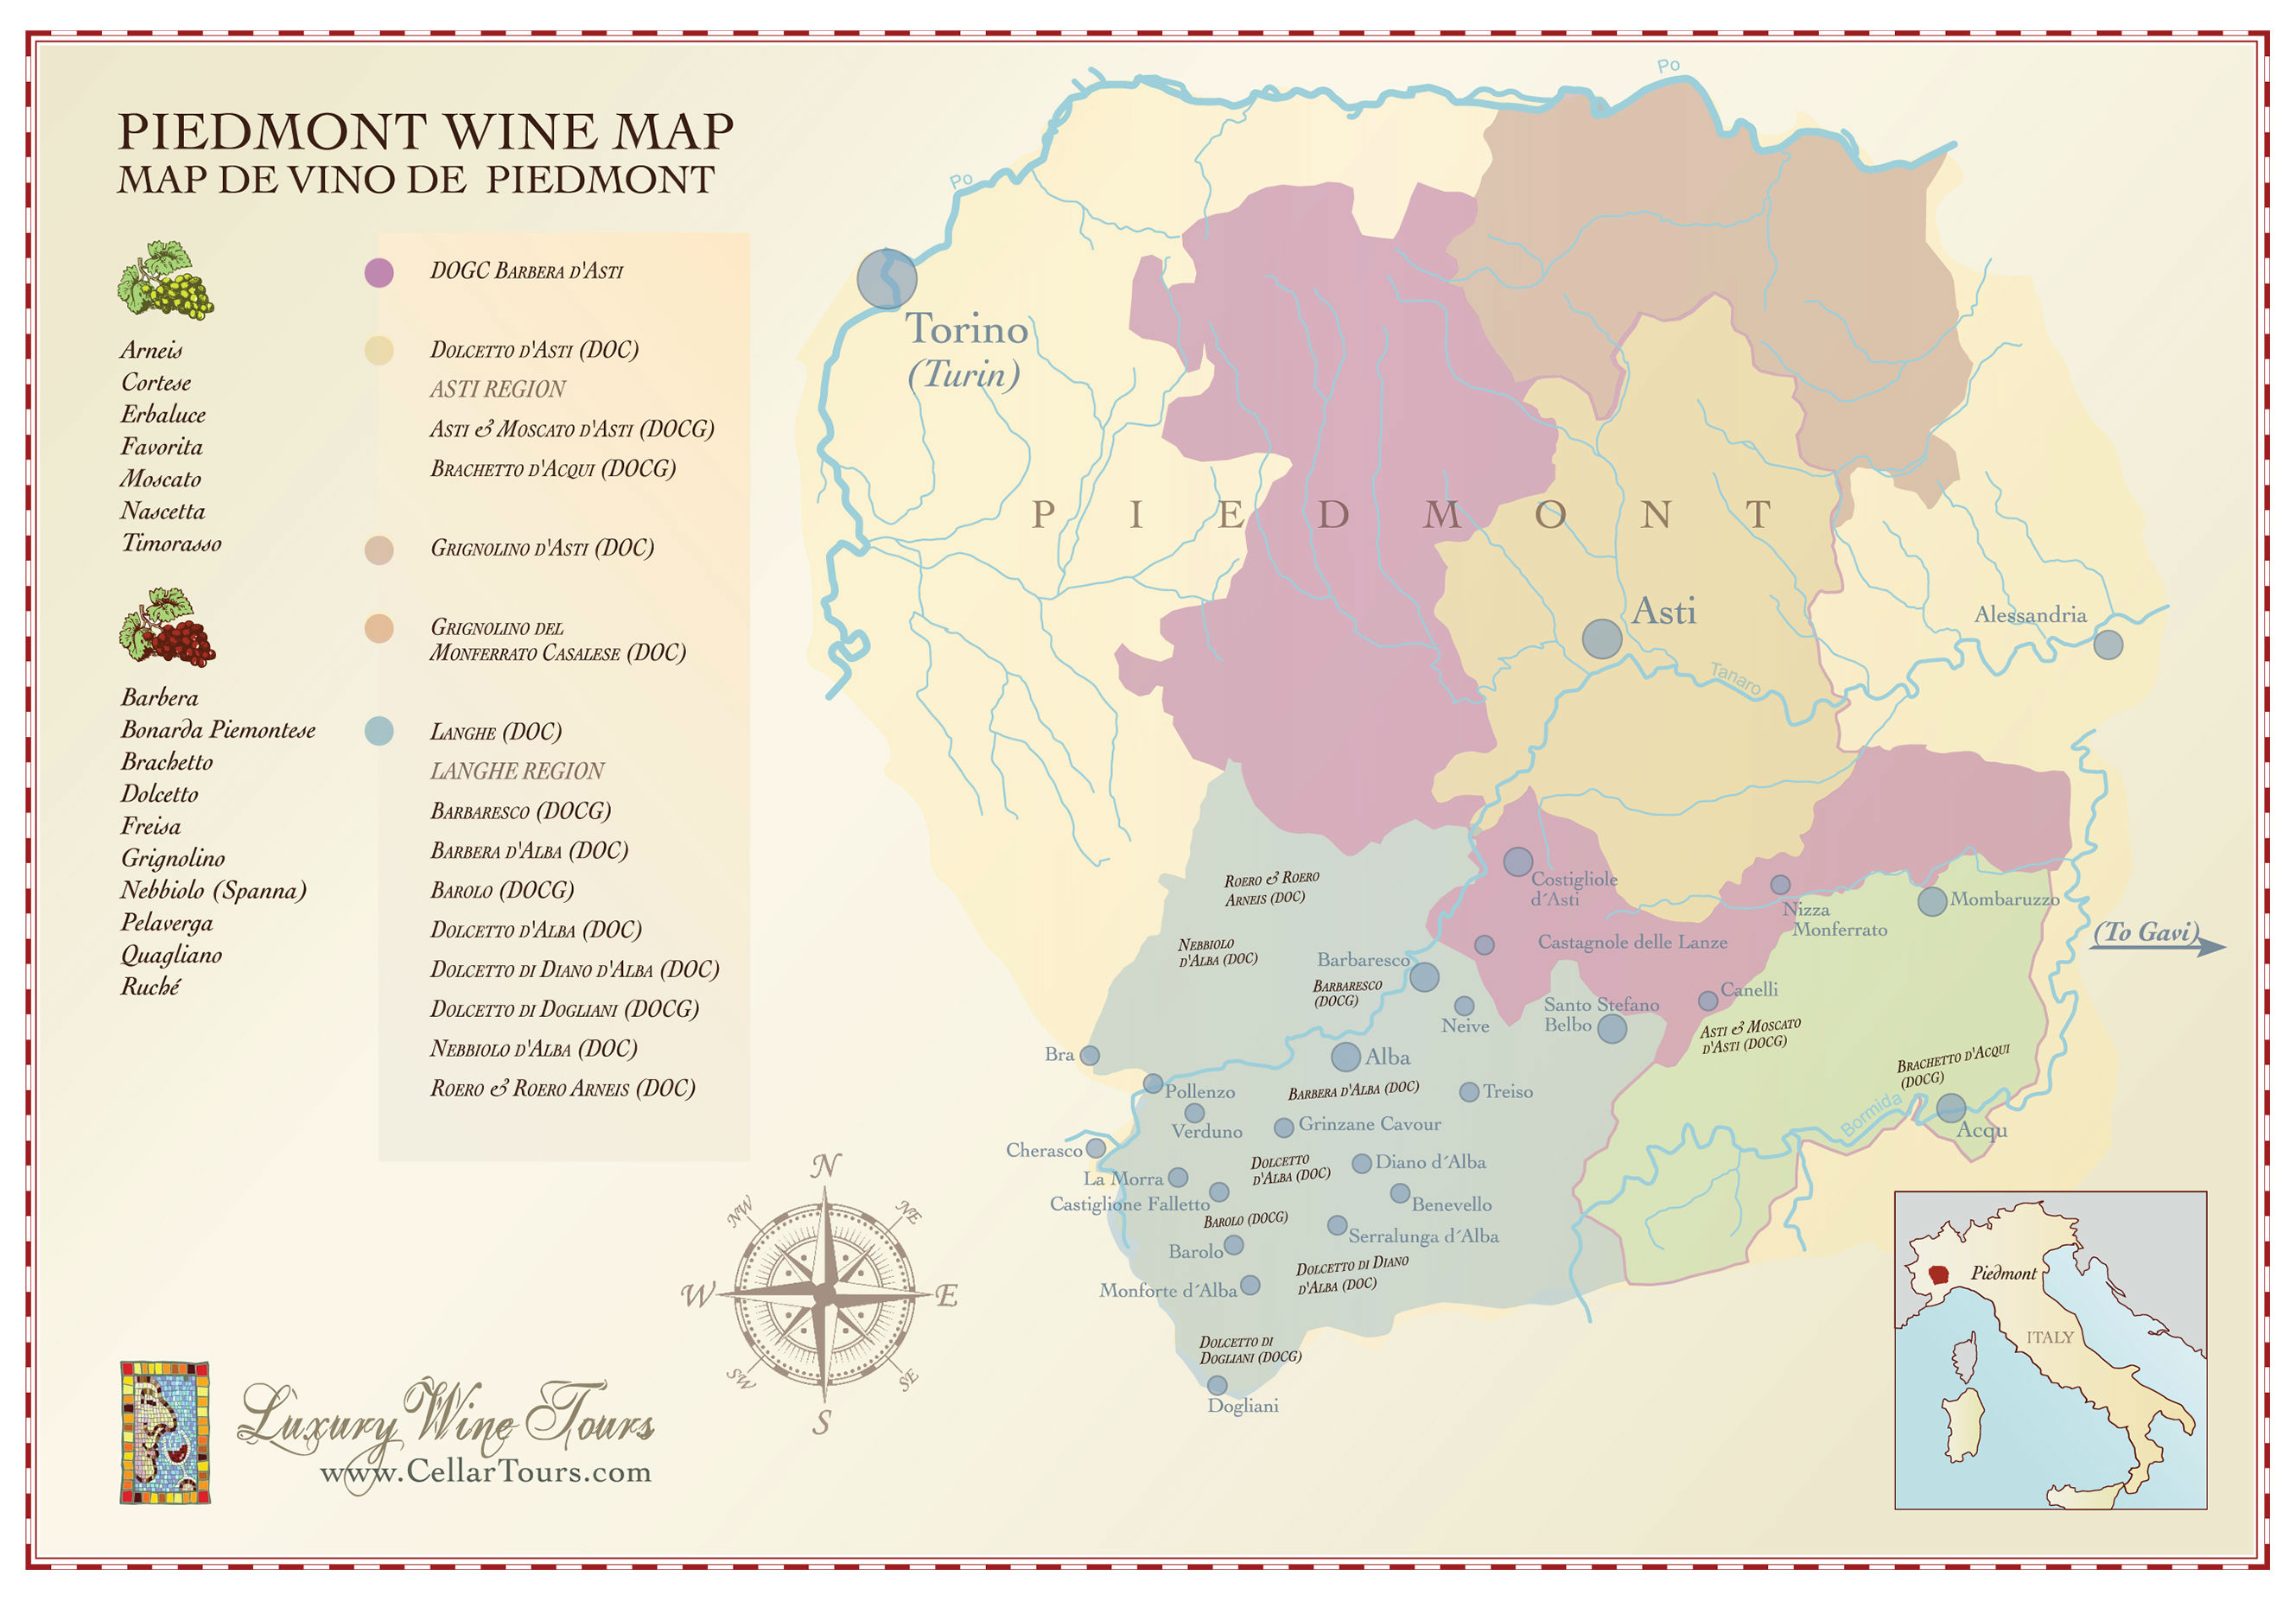 an introduction to the piedmont wine region in italy See a map of northern italy's piemonte region showing the the piemonte, or piedmont region see the food and wine of the piemonte for an introduction to.